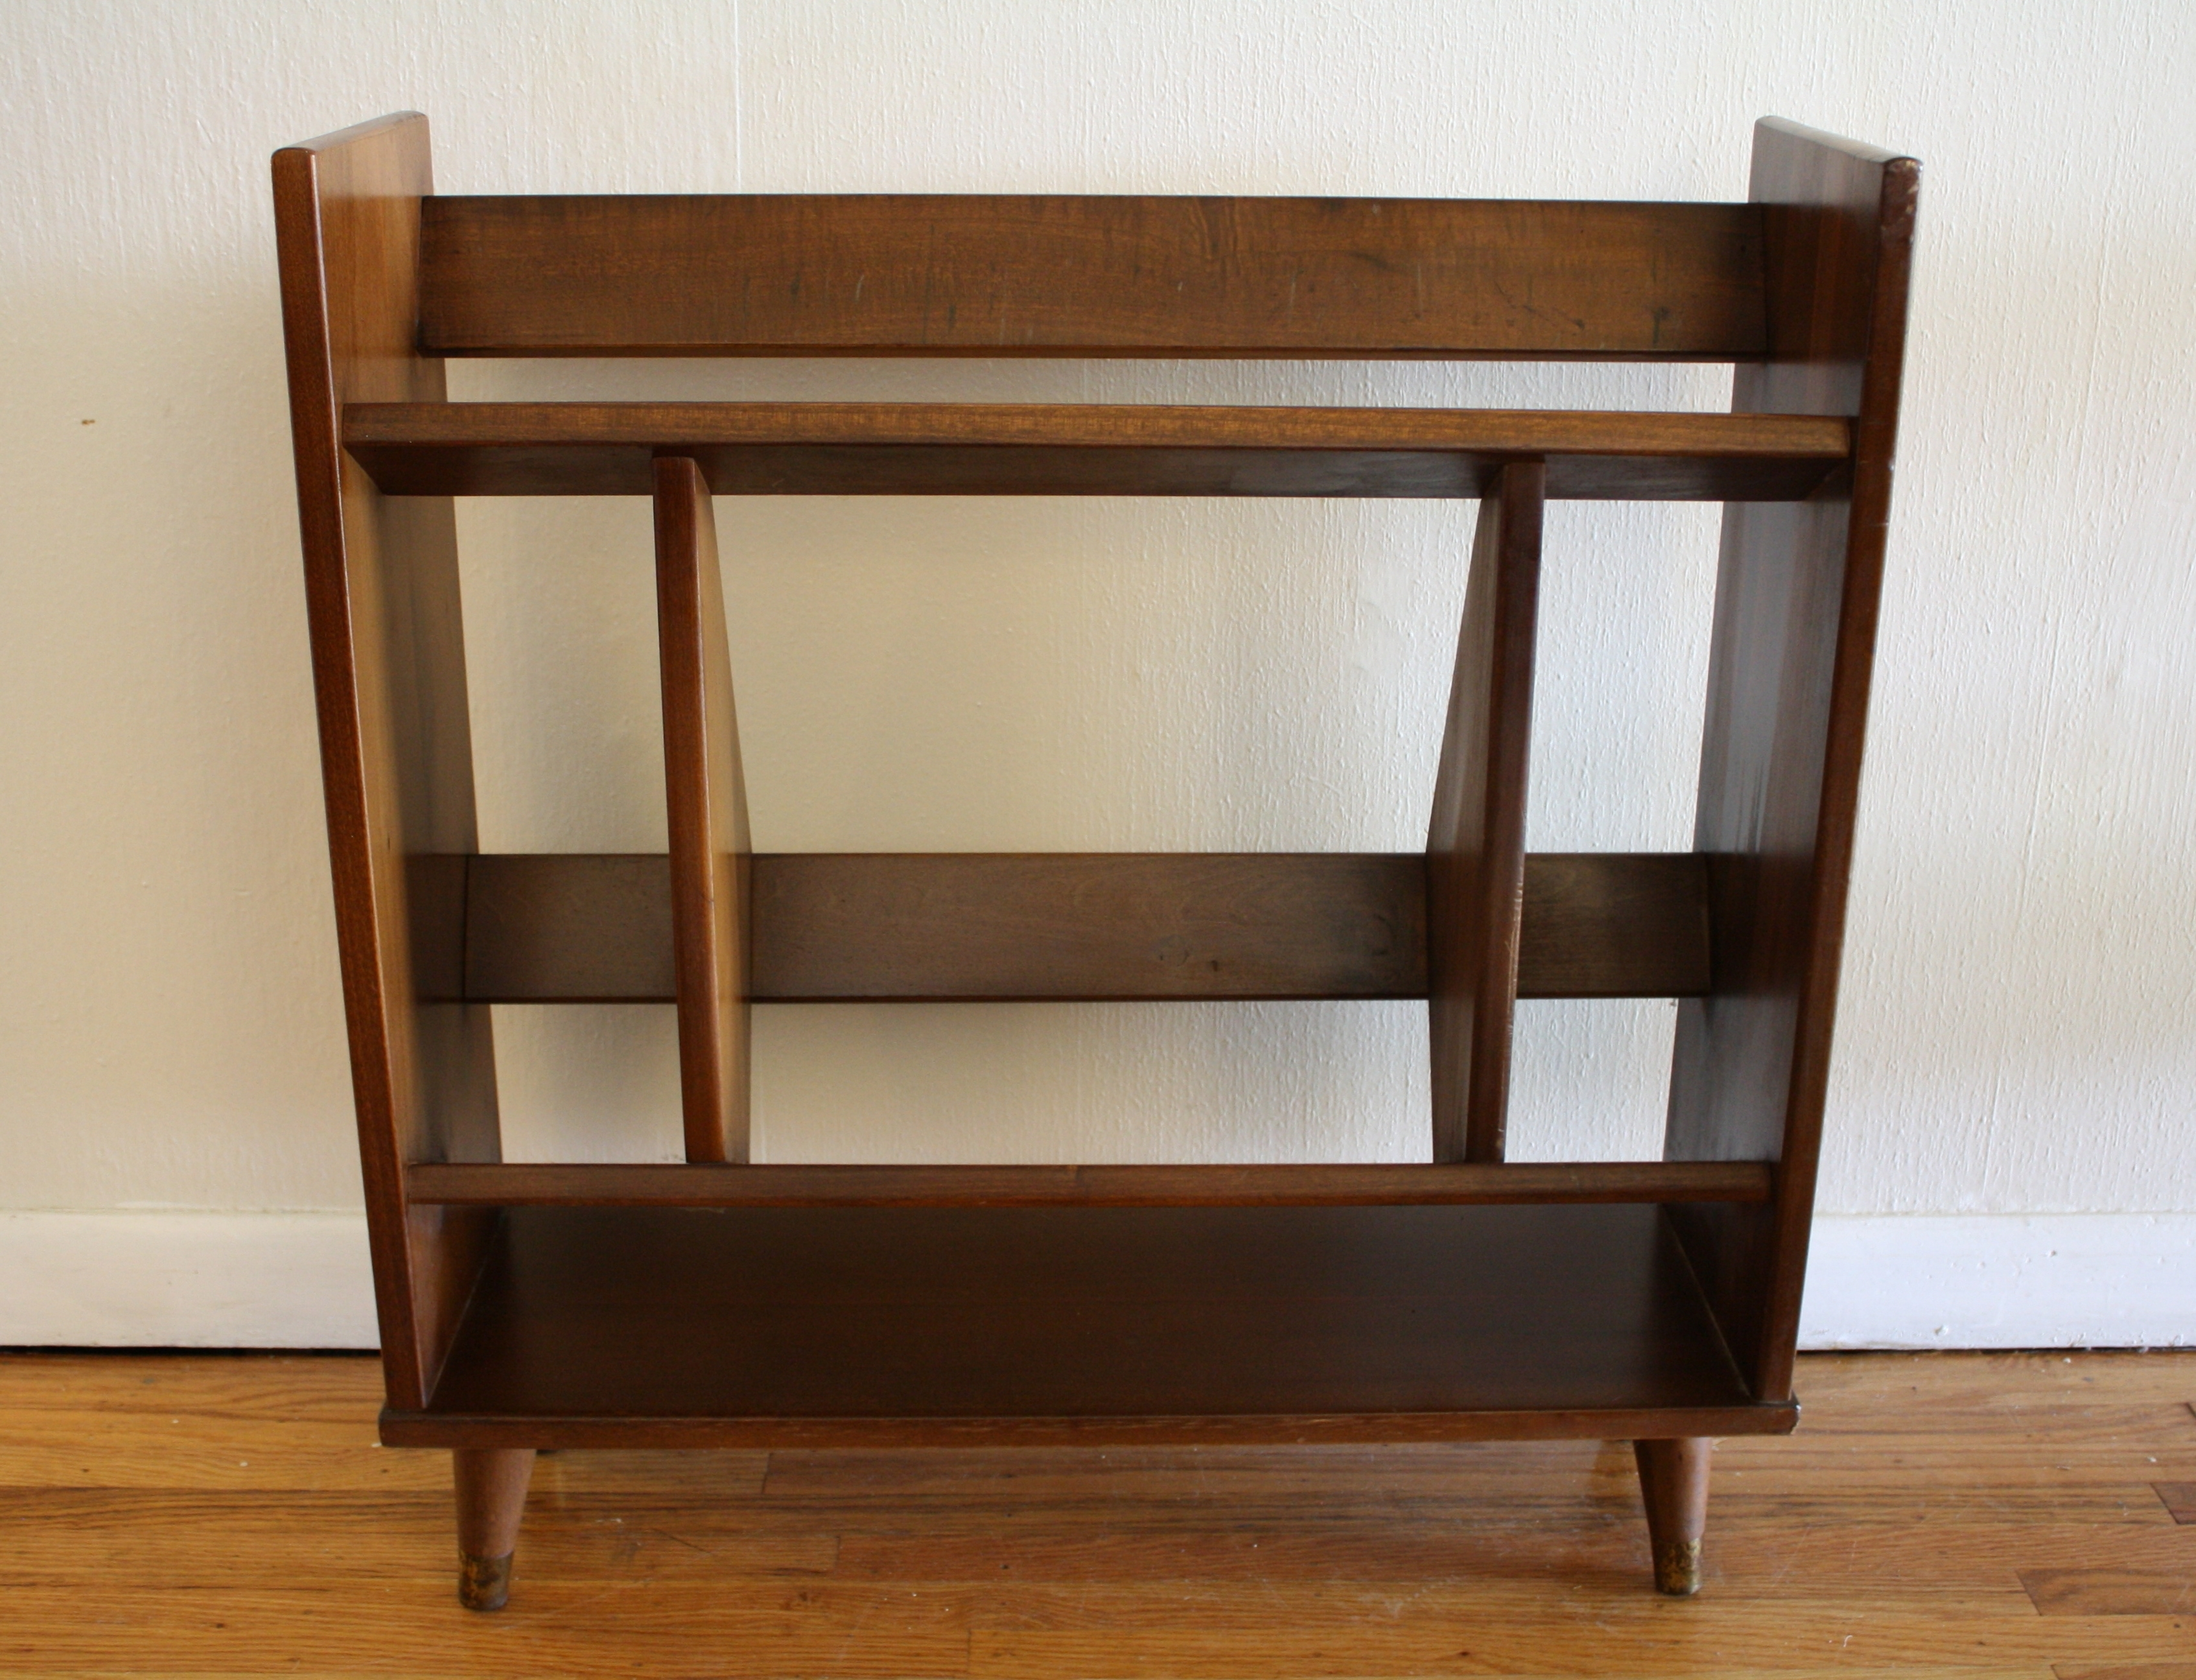 Popular Furniture: Mid Century Modern Bookcase Brown Finish For With Mid Century Modern Bookcases (View 14 of 15)